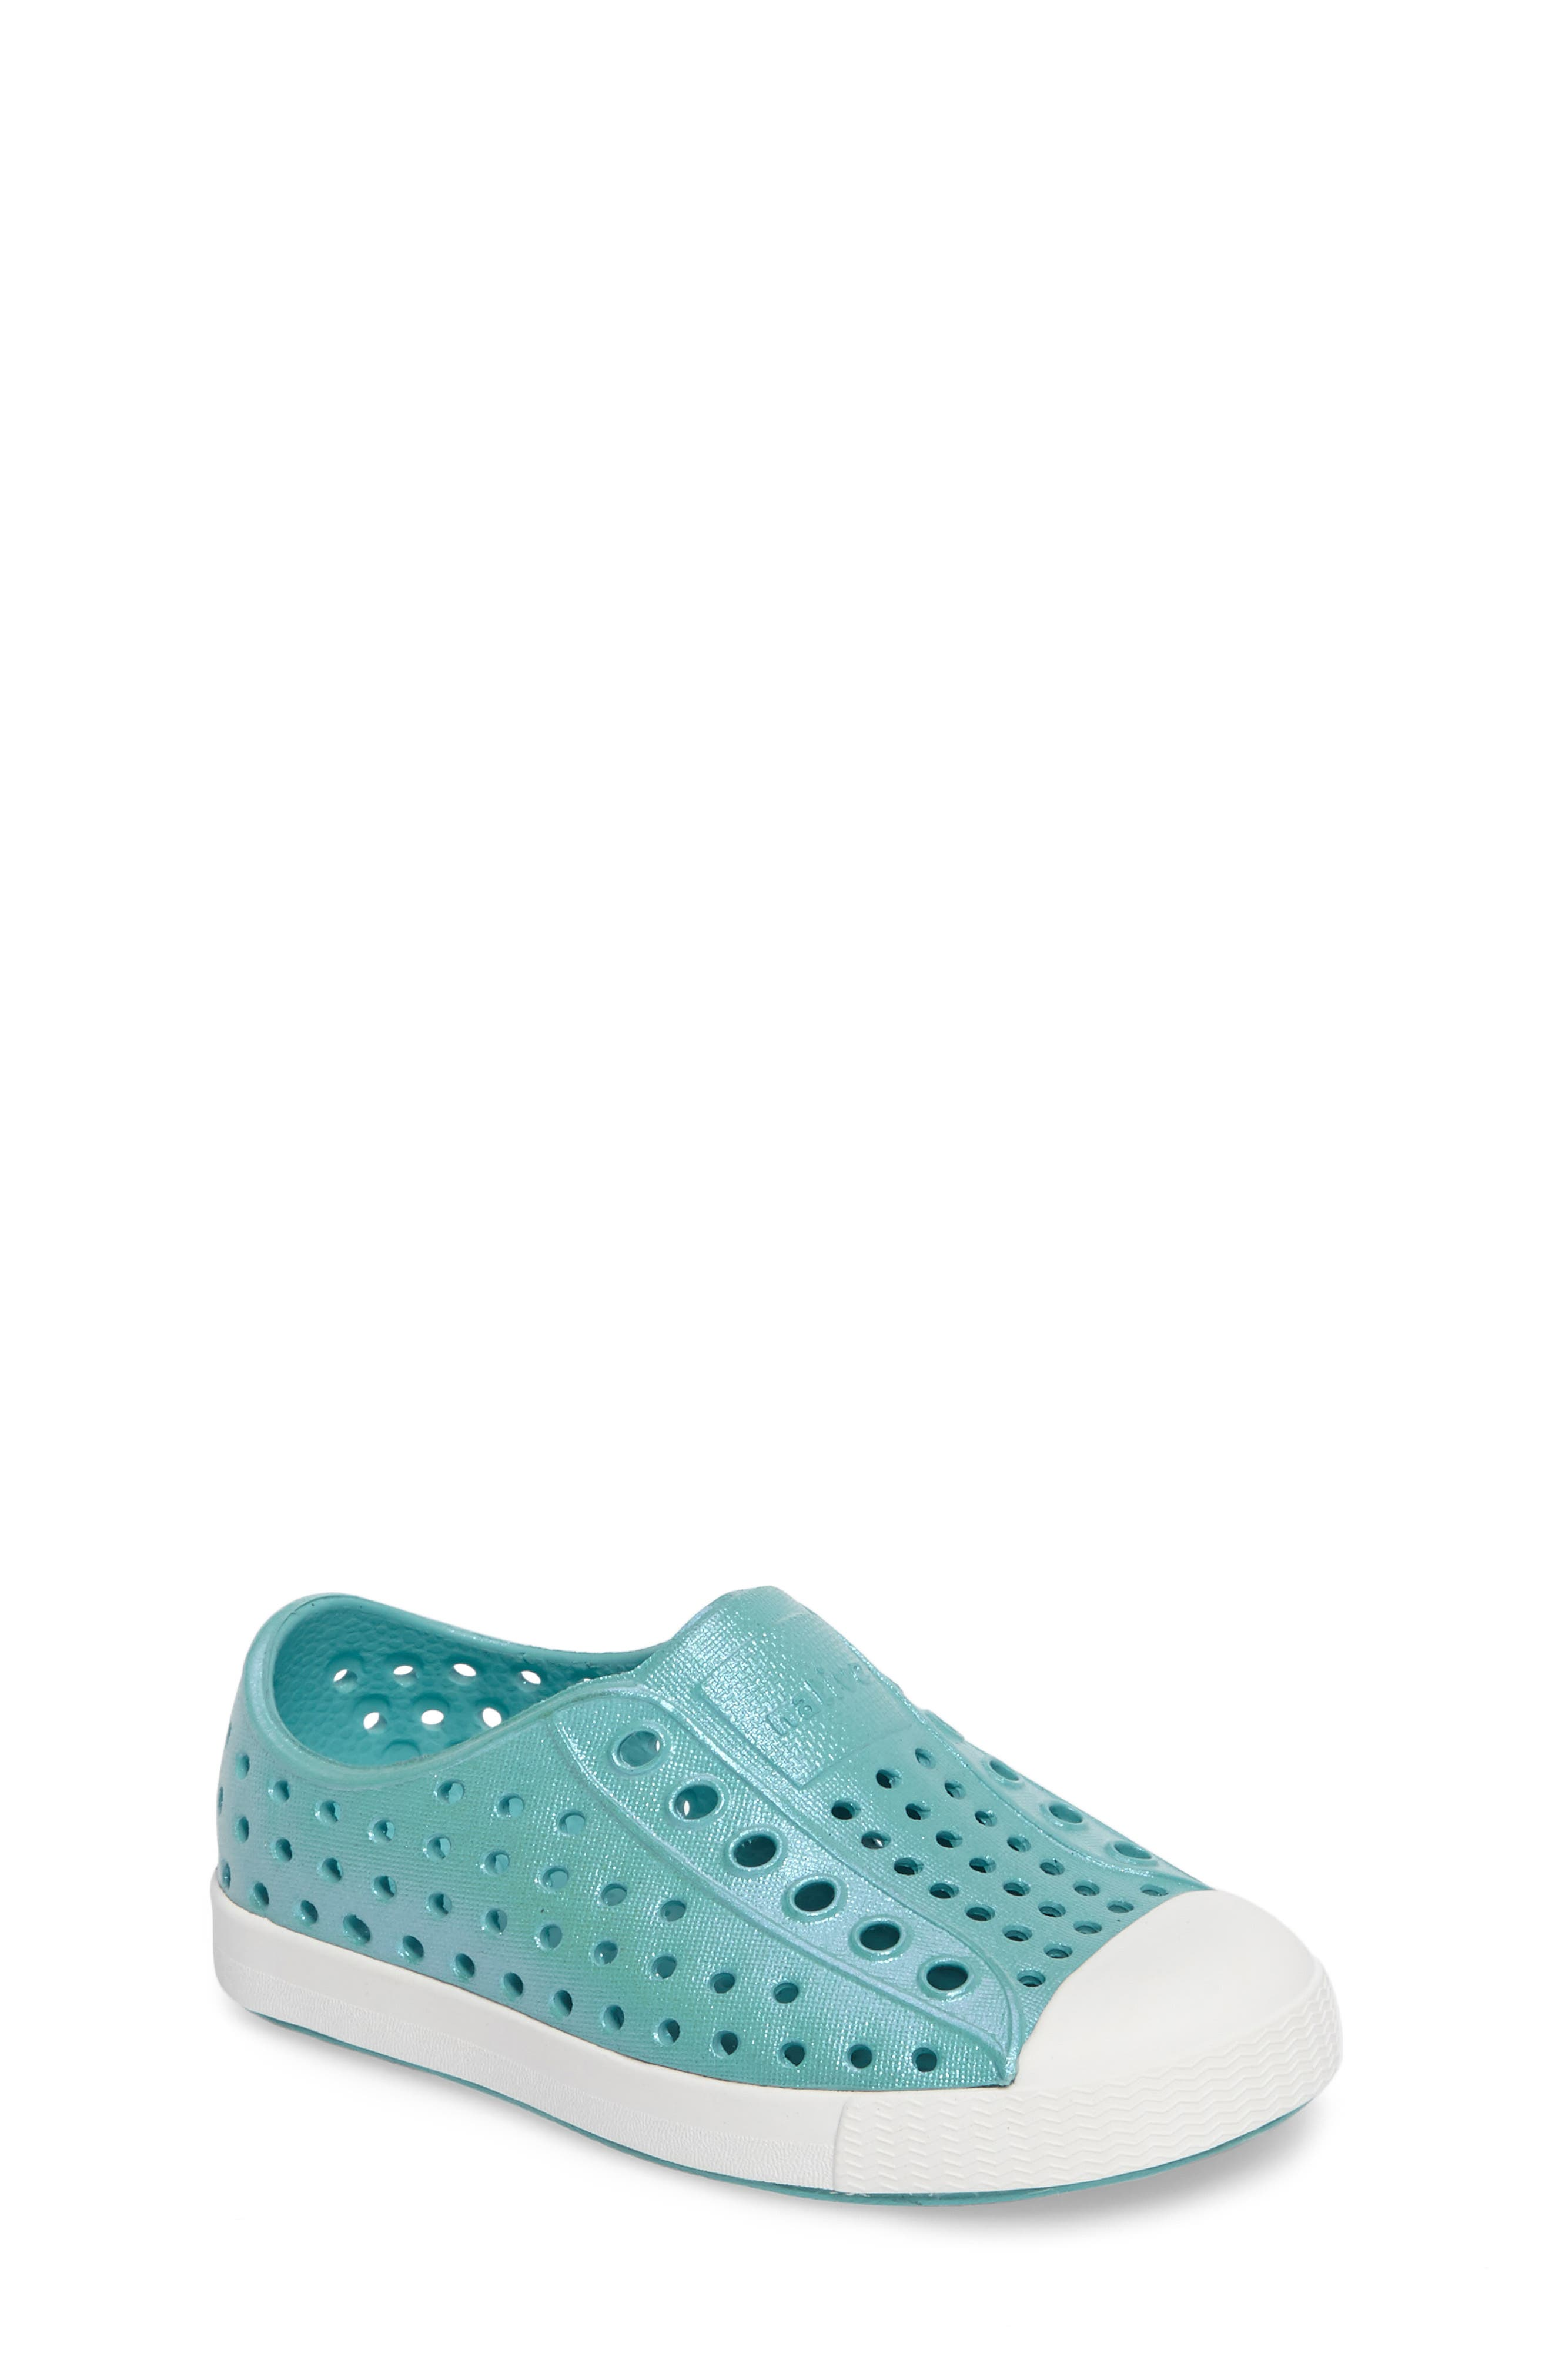 Native Shoes 'Jefferson' Iridescent Slip-On Sneaker (Baby, Walker, Toddler & Little Kid)